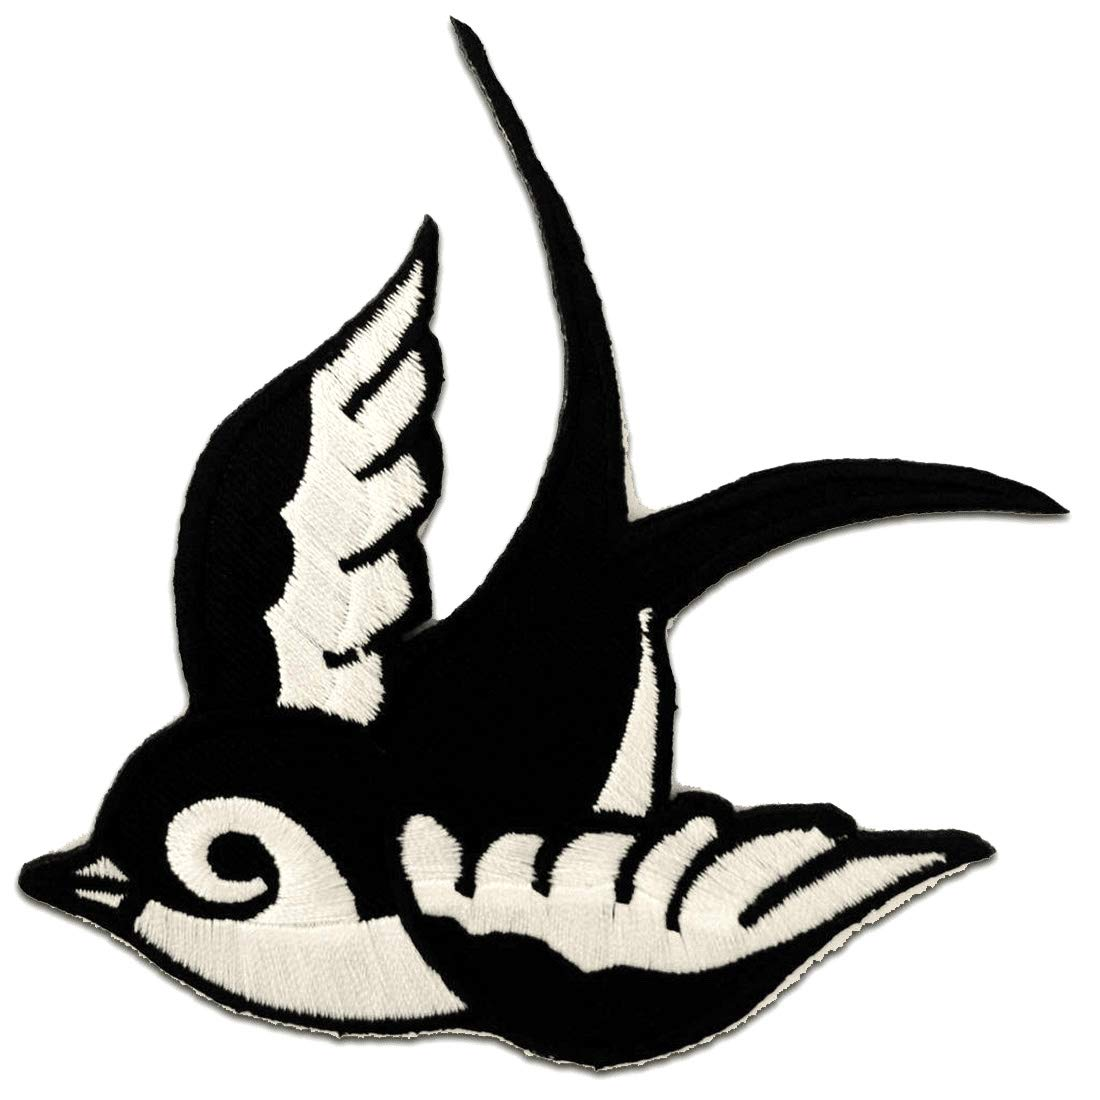 Black and White Peace Symbol Peace Dove Hippie Patch ''9,5 x 6,3 cm'' Patch - Embroidered Iron On Patches Sew On Patches Embroidery Applikations Applique Embroidered Iron On Patches Sew On Patches Embroidery Applikations Applique Catch The Catch-the-Patch.